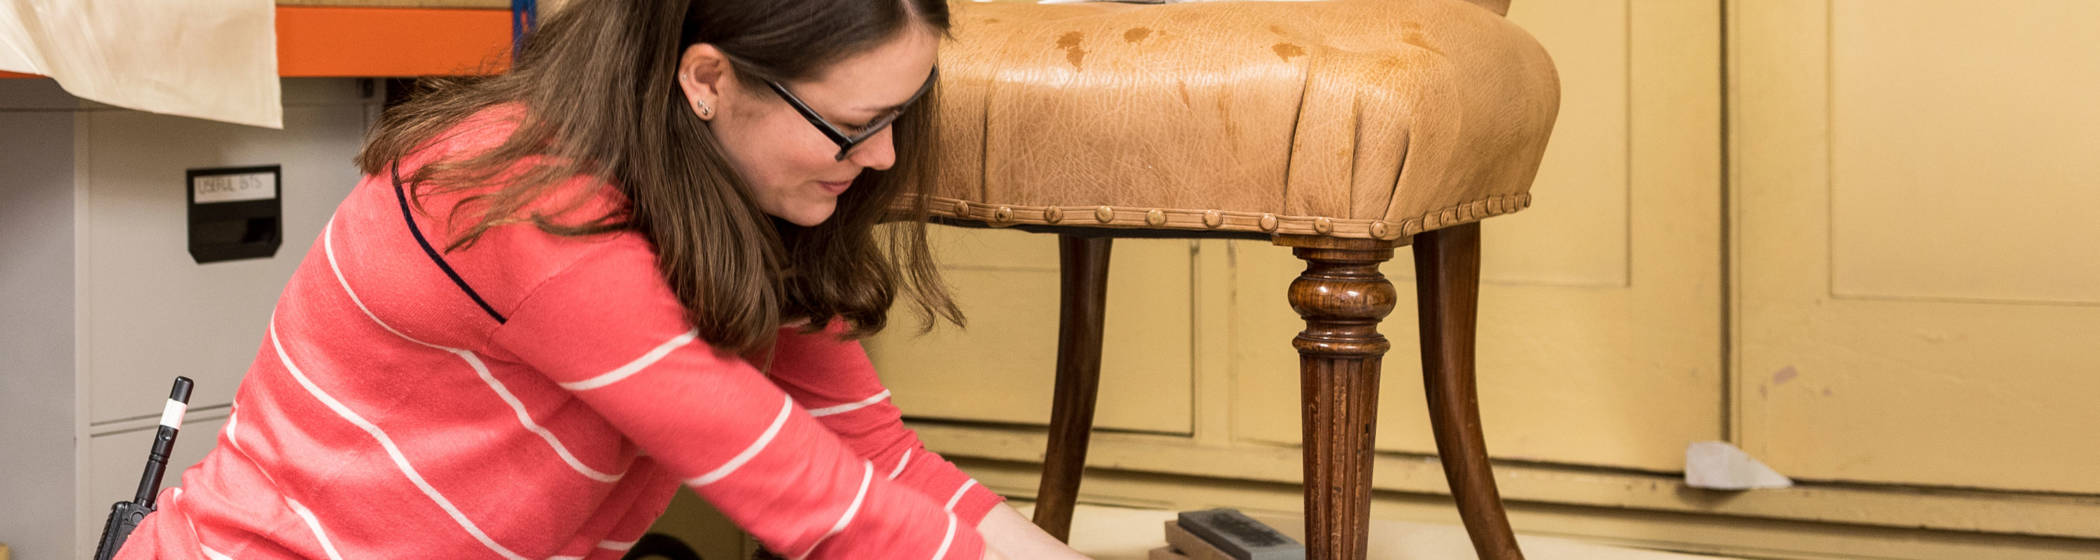 Woman polishes the legs of an antique chair